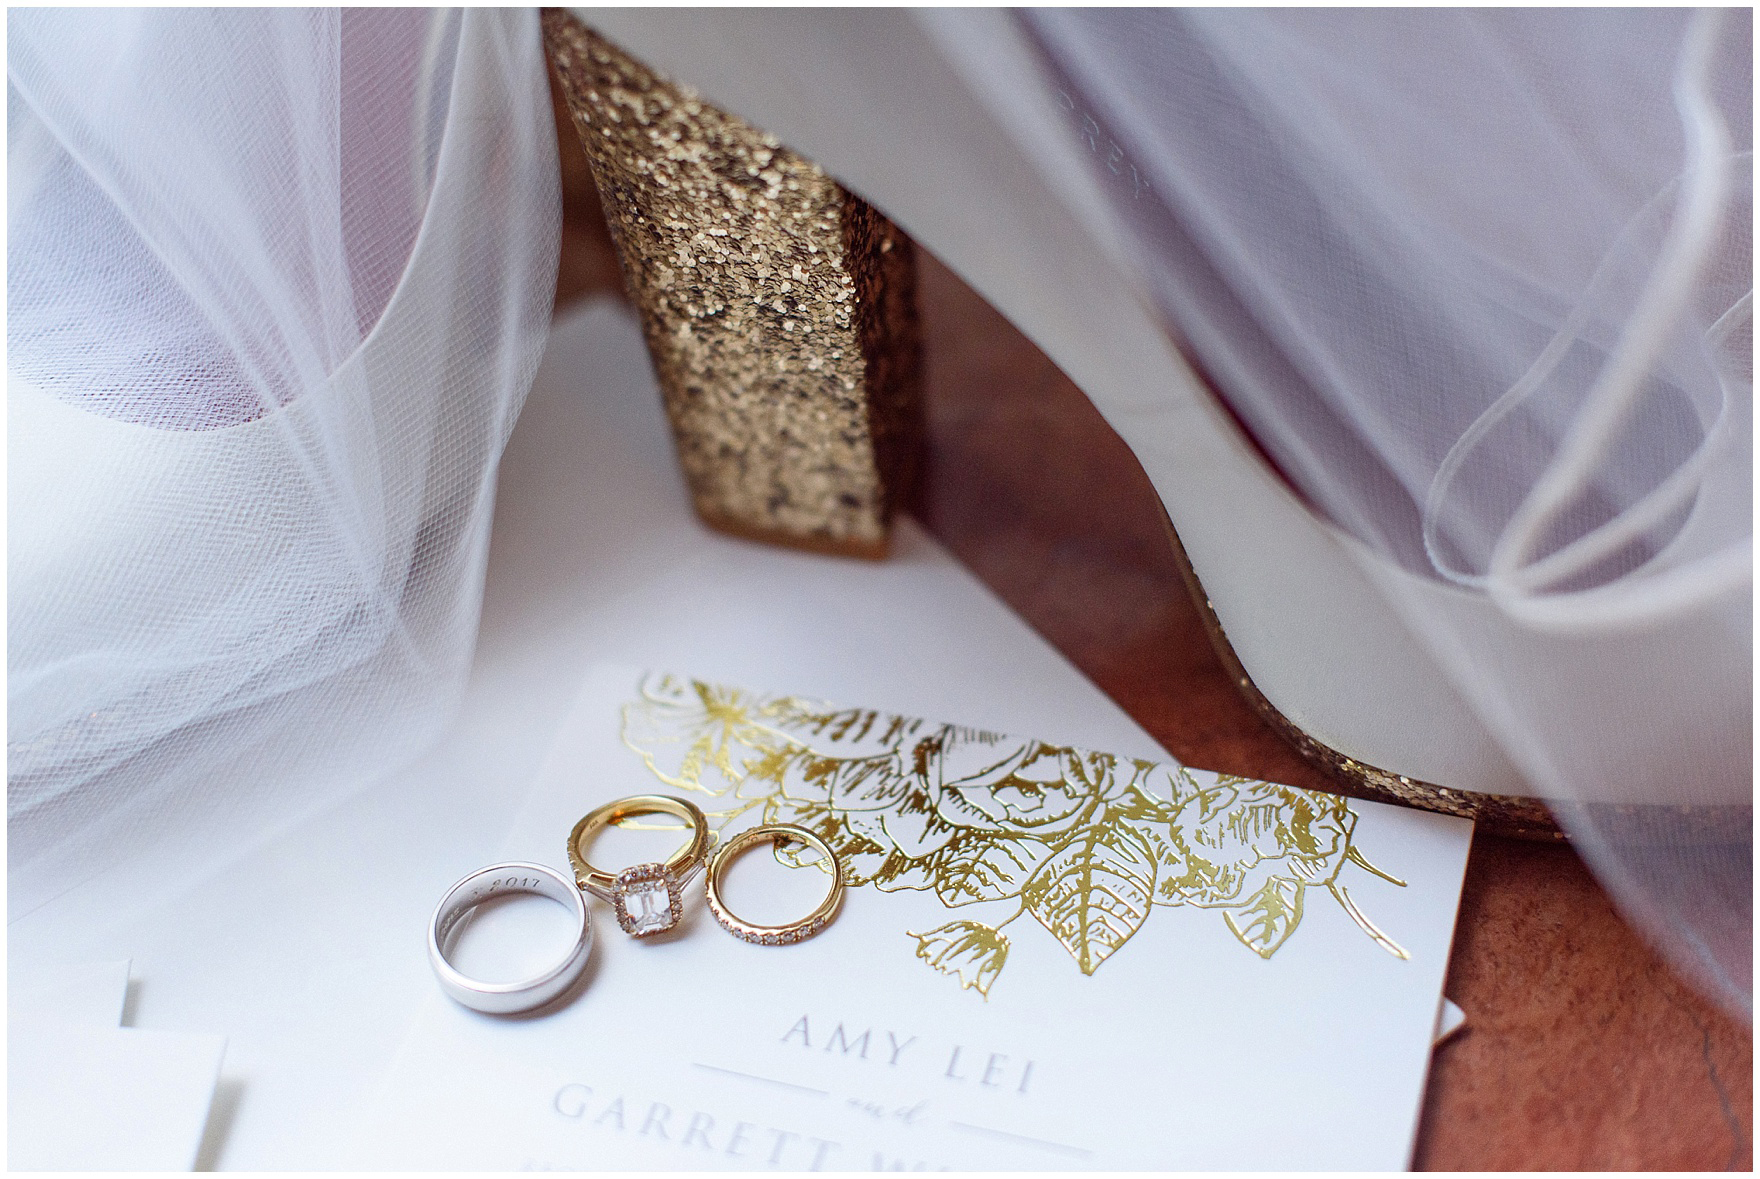 Wedding and engagement rings sit on a gold foil invitation for a University Club of Chicago wedding.